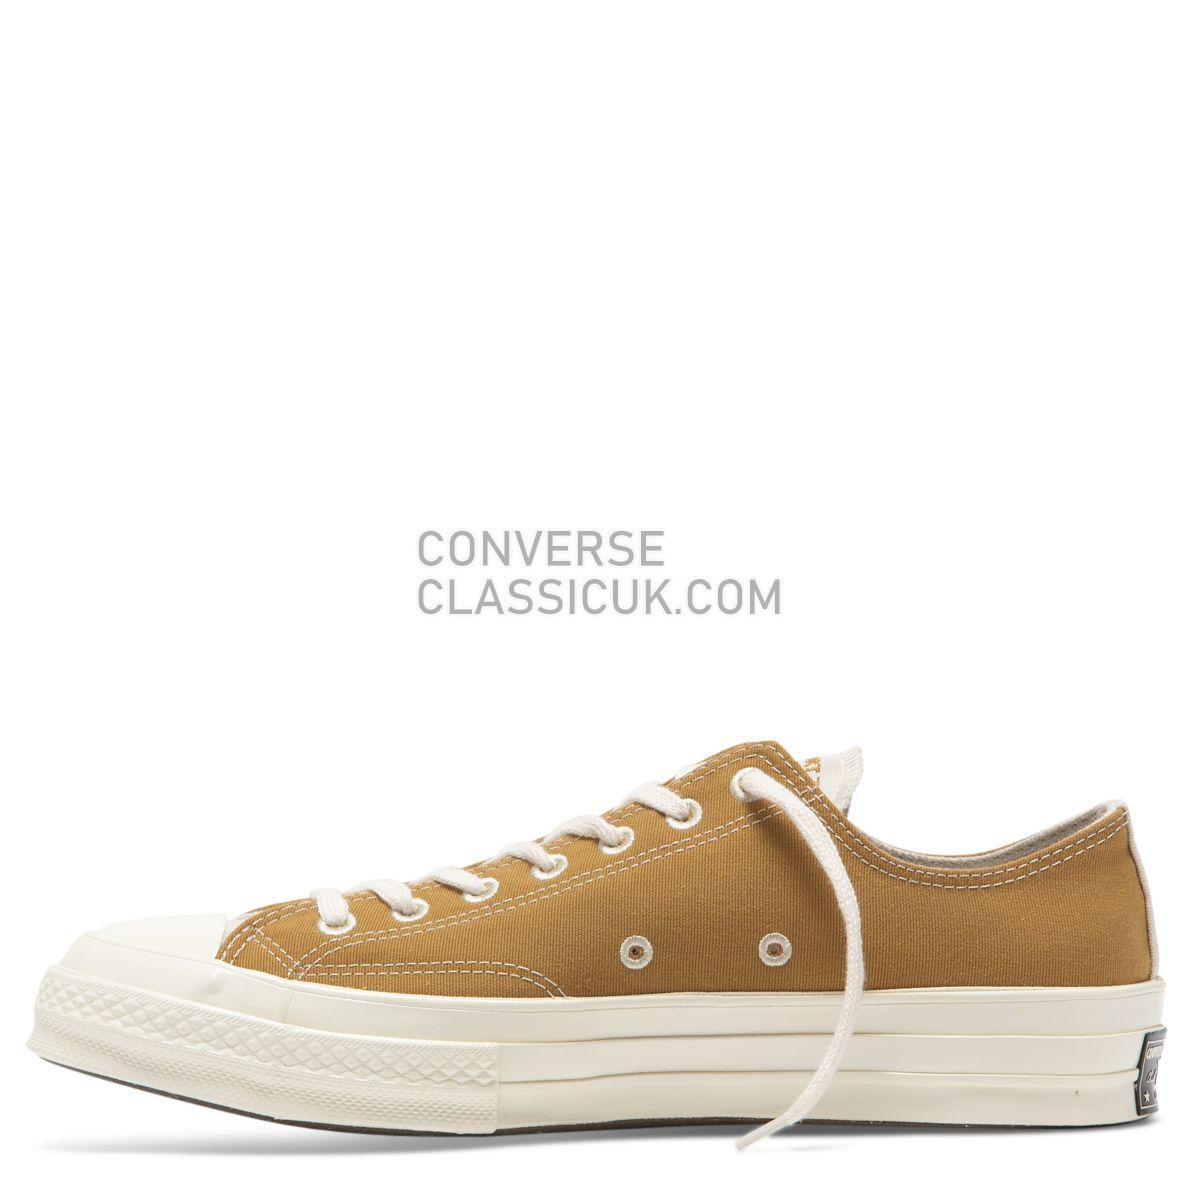 Converse Chuck Taylor All Star 70 Renew Canvas Low Top Wheat Mens Womens Unisex 165423 Wheat/Natural/Black Shoes